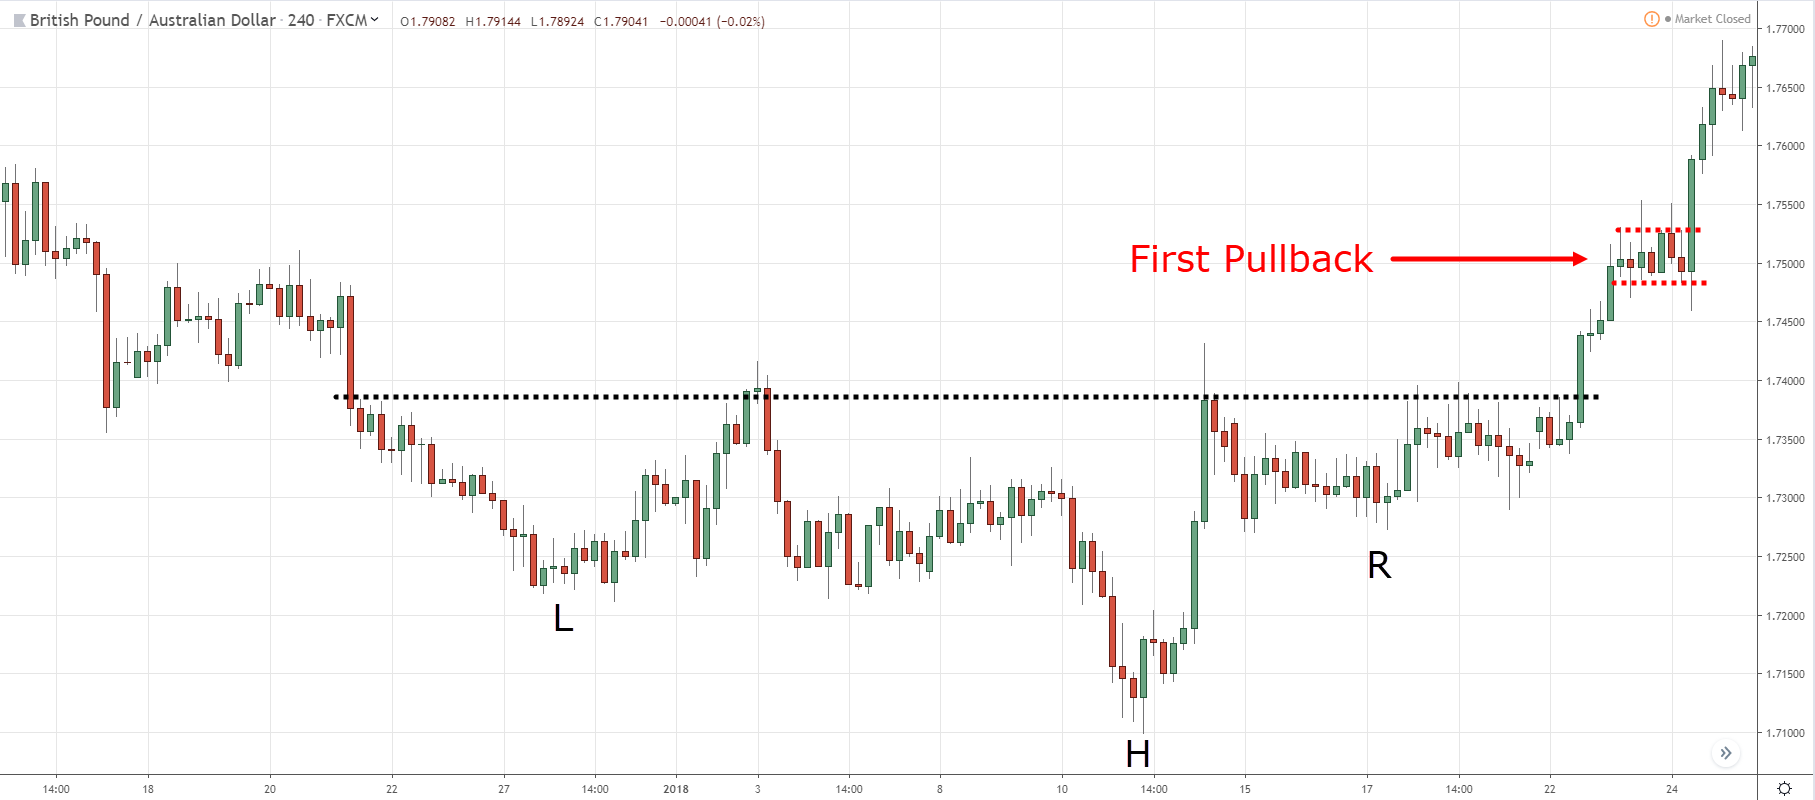 10.-IHS-First-Pullback.